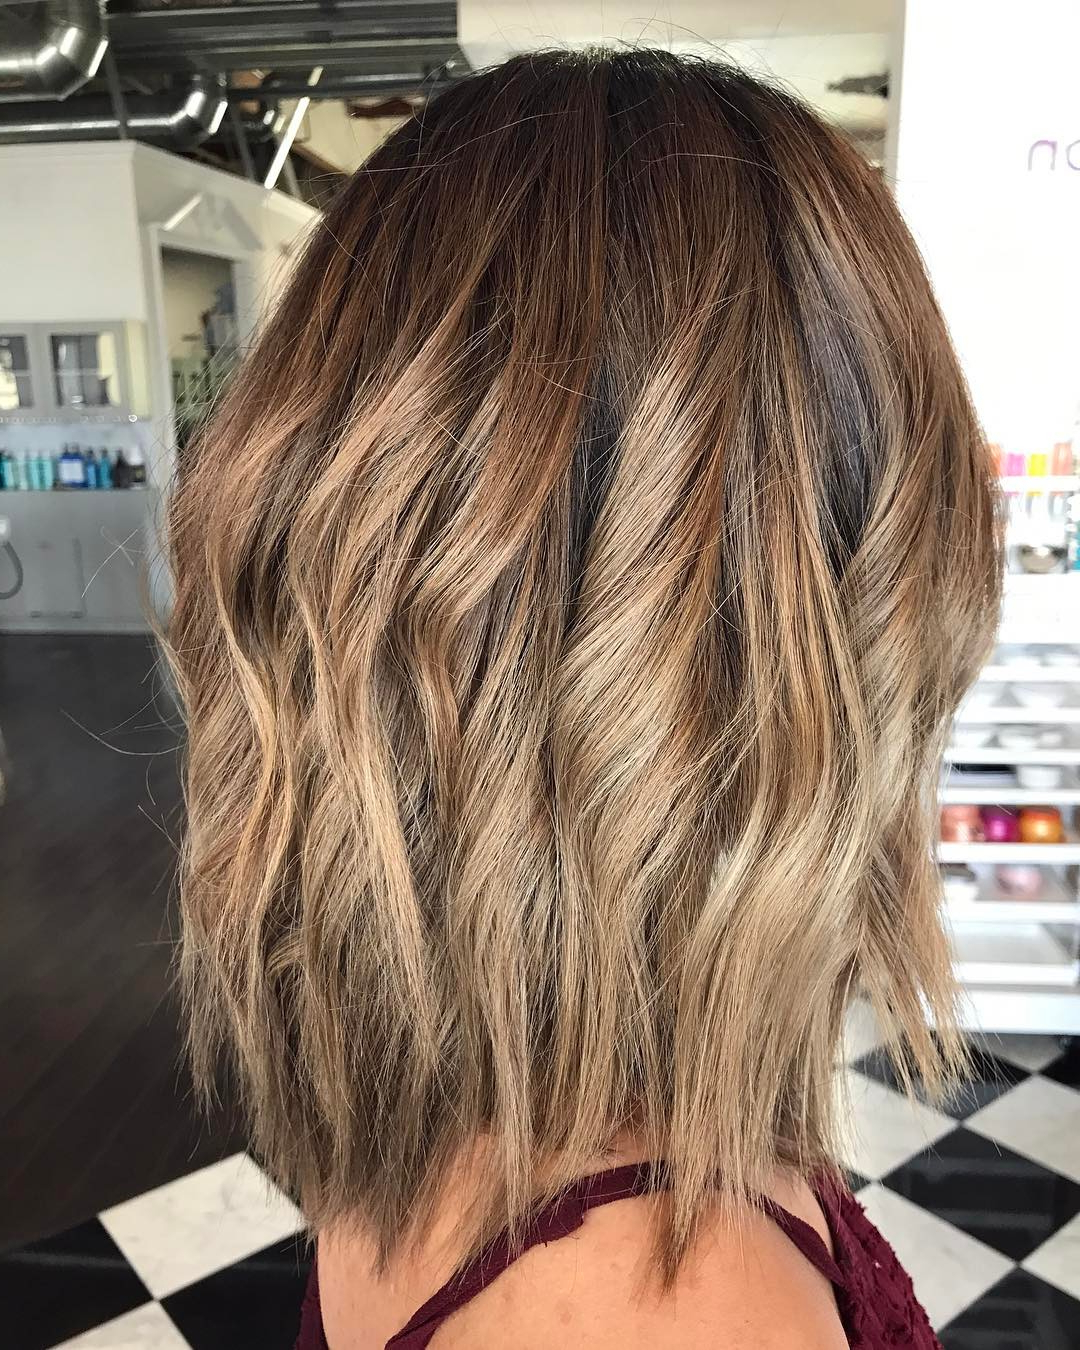 10 Layered Bob Hairstyles – Look Fab In New Blonde Shades! – Popular For Short Bob Hairstyles With Long Edgy Layers (View 3 of 25)